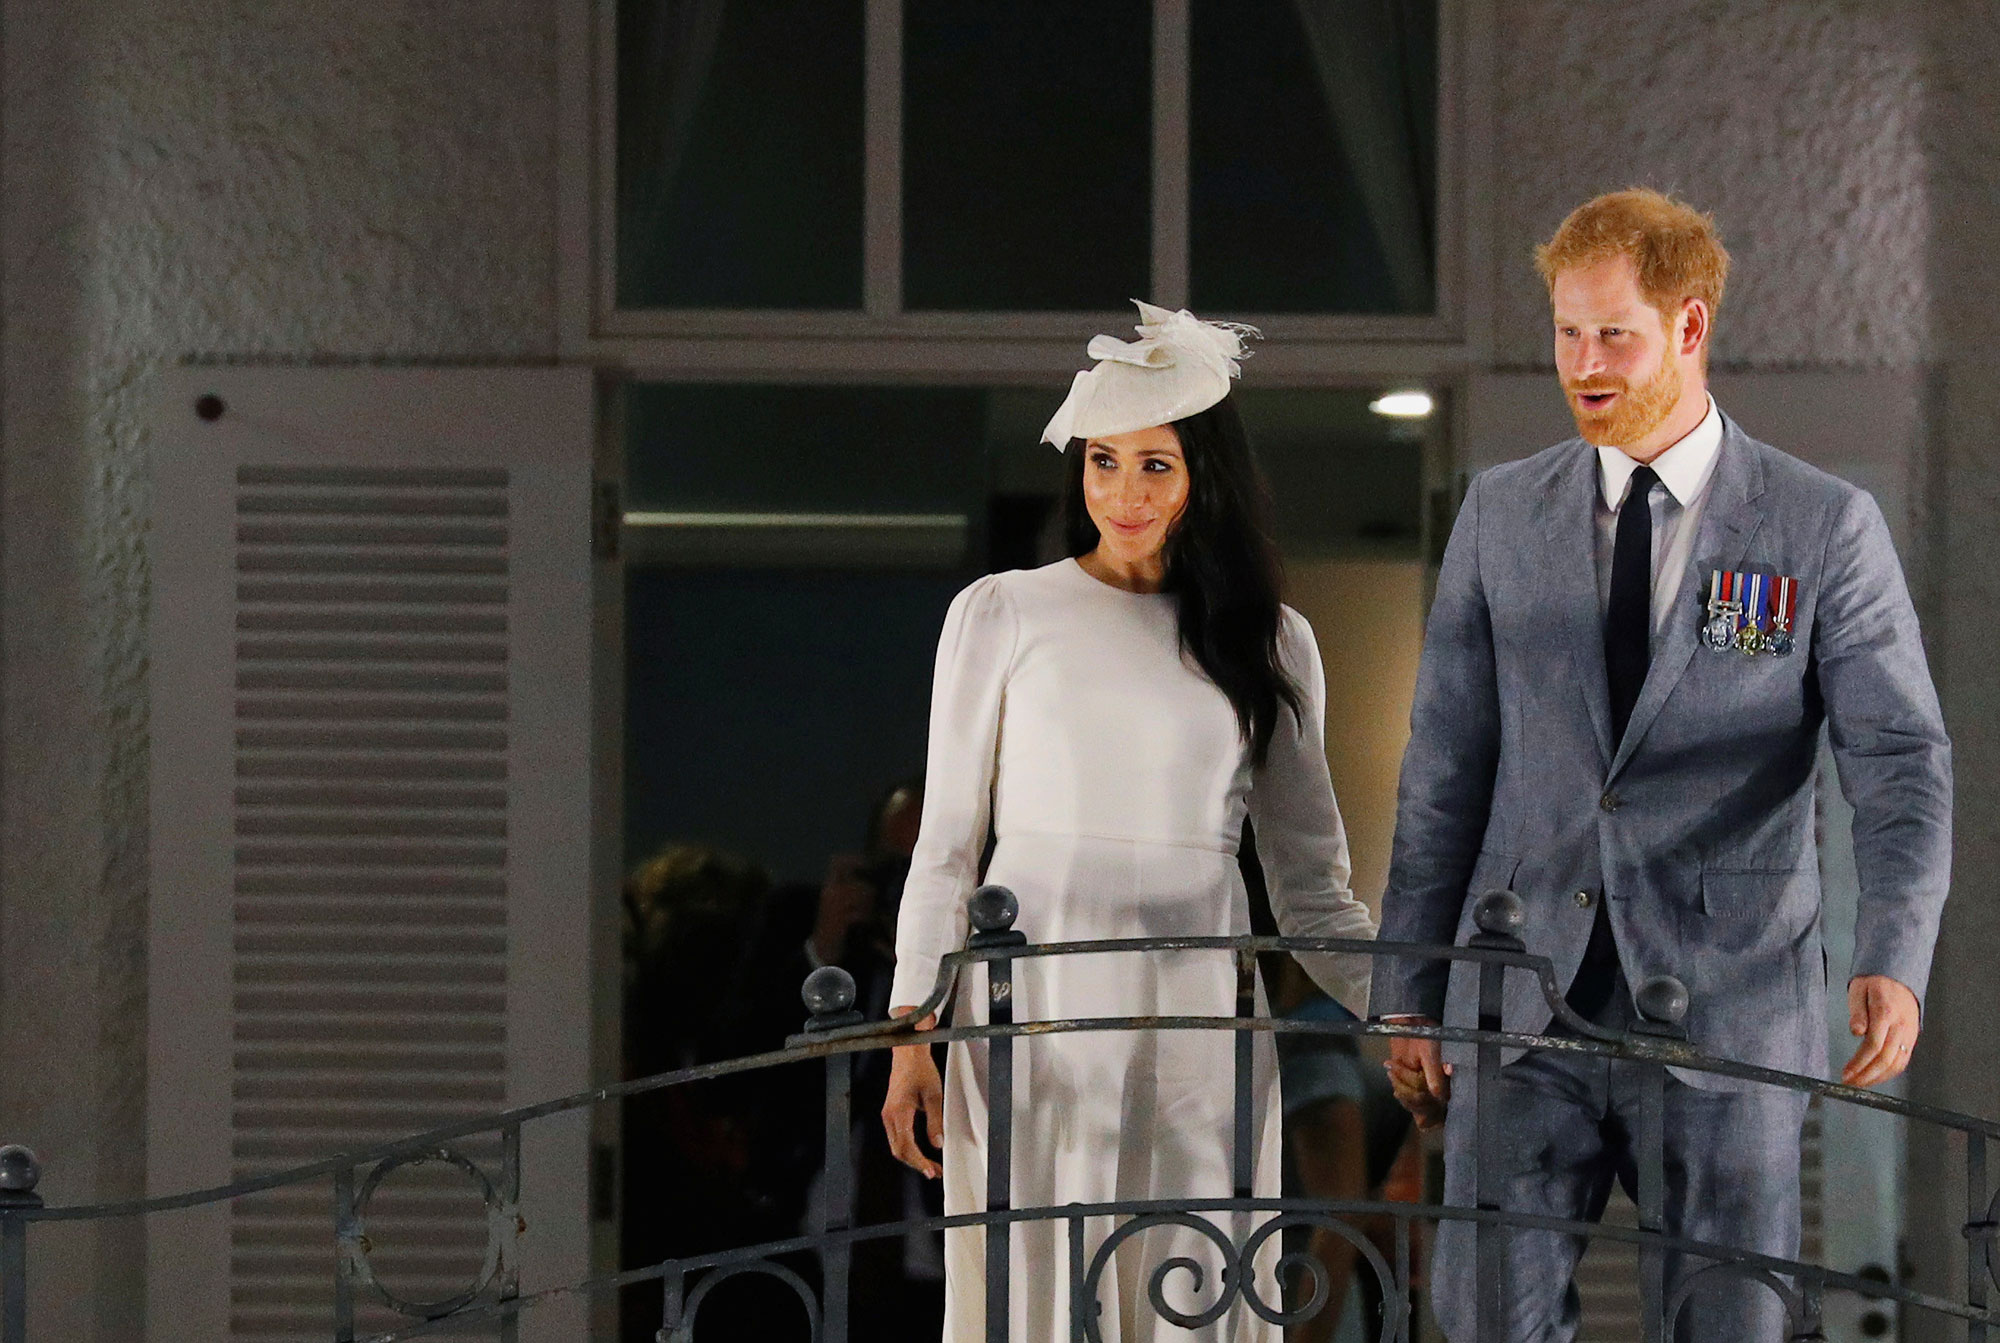 <div class='meta'><div class='origin-logo' data-origin='none'></div><span class='caption-text' data-credit='Phil Noble/Pool Photo via AP'>Britain's Prince Harry and Meghan, Duchess of Sussex wave from the balcony of the Grand Pacific Hotel in Suva, Fiji, Tuesday, Oct. 23, 2018.</span></div>